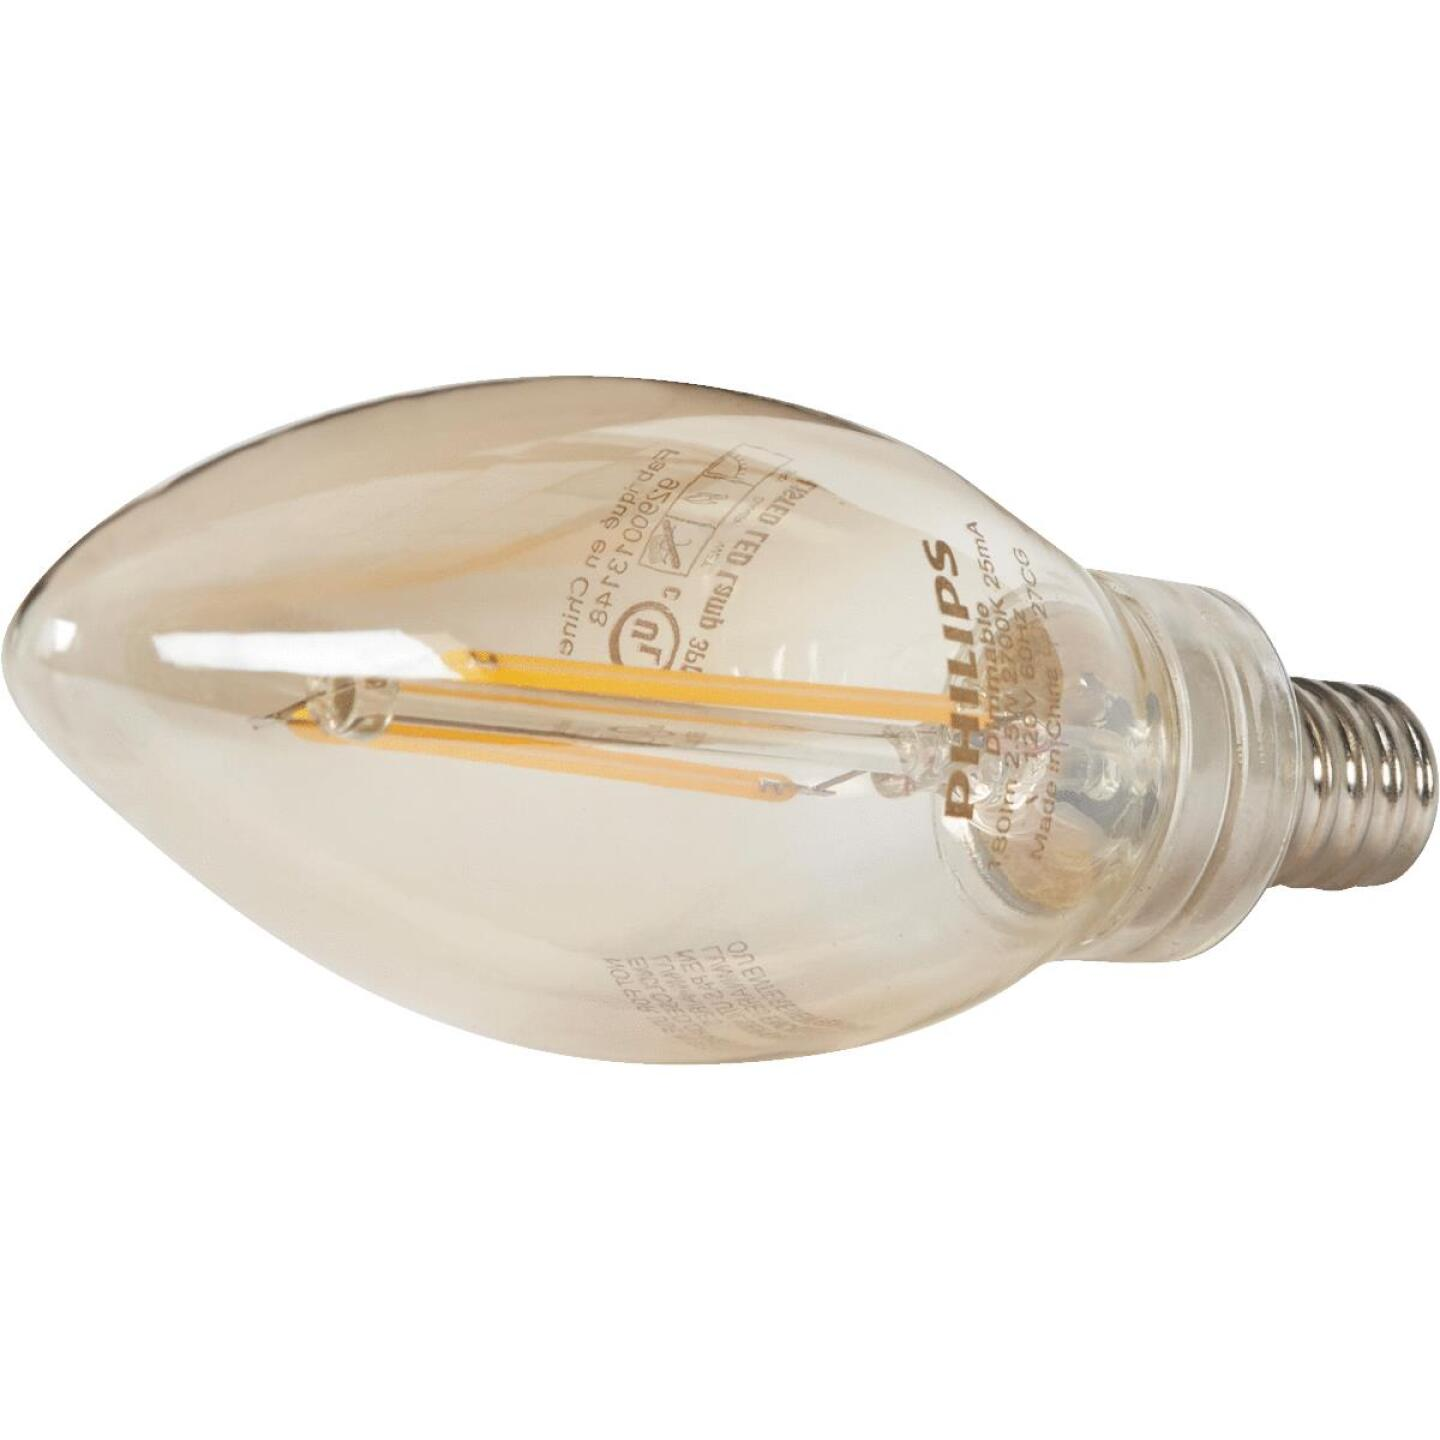 Philips Vintage Edison 25W Equivalent Soft White B11 Candelabra LED Decorative Light Bulb (3-Pack) Image 3